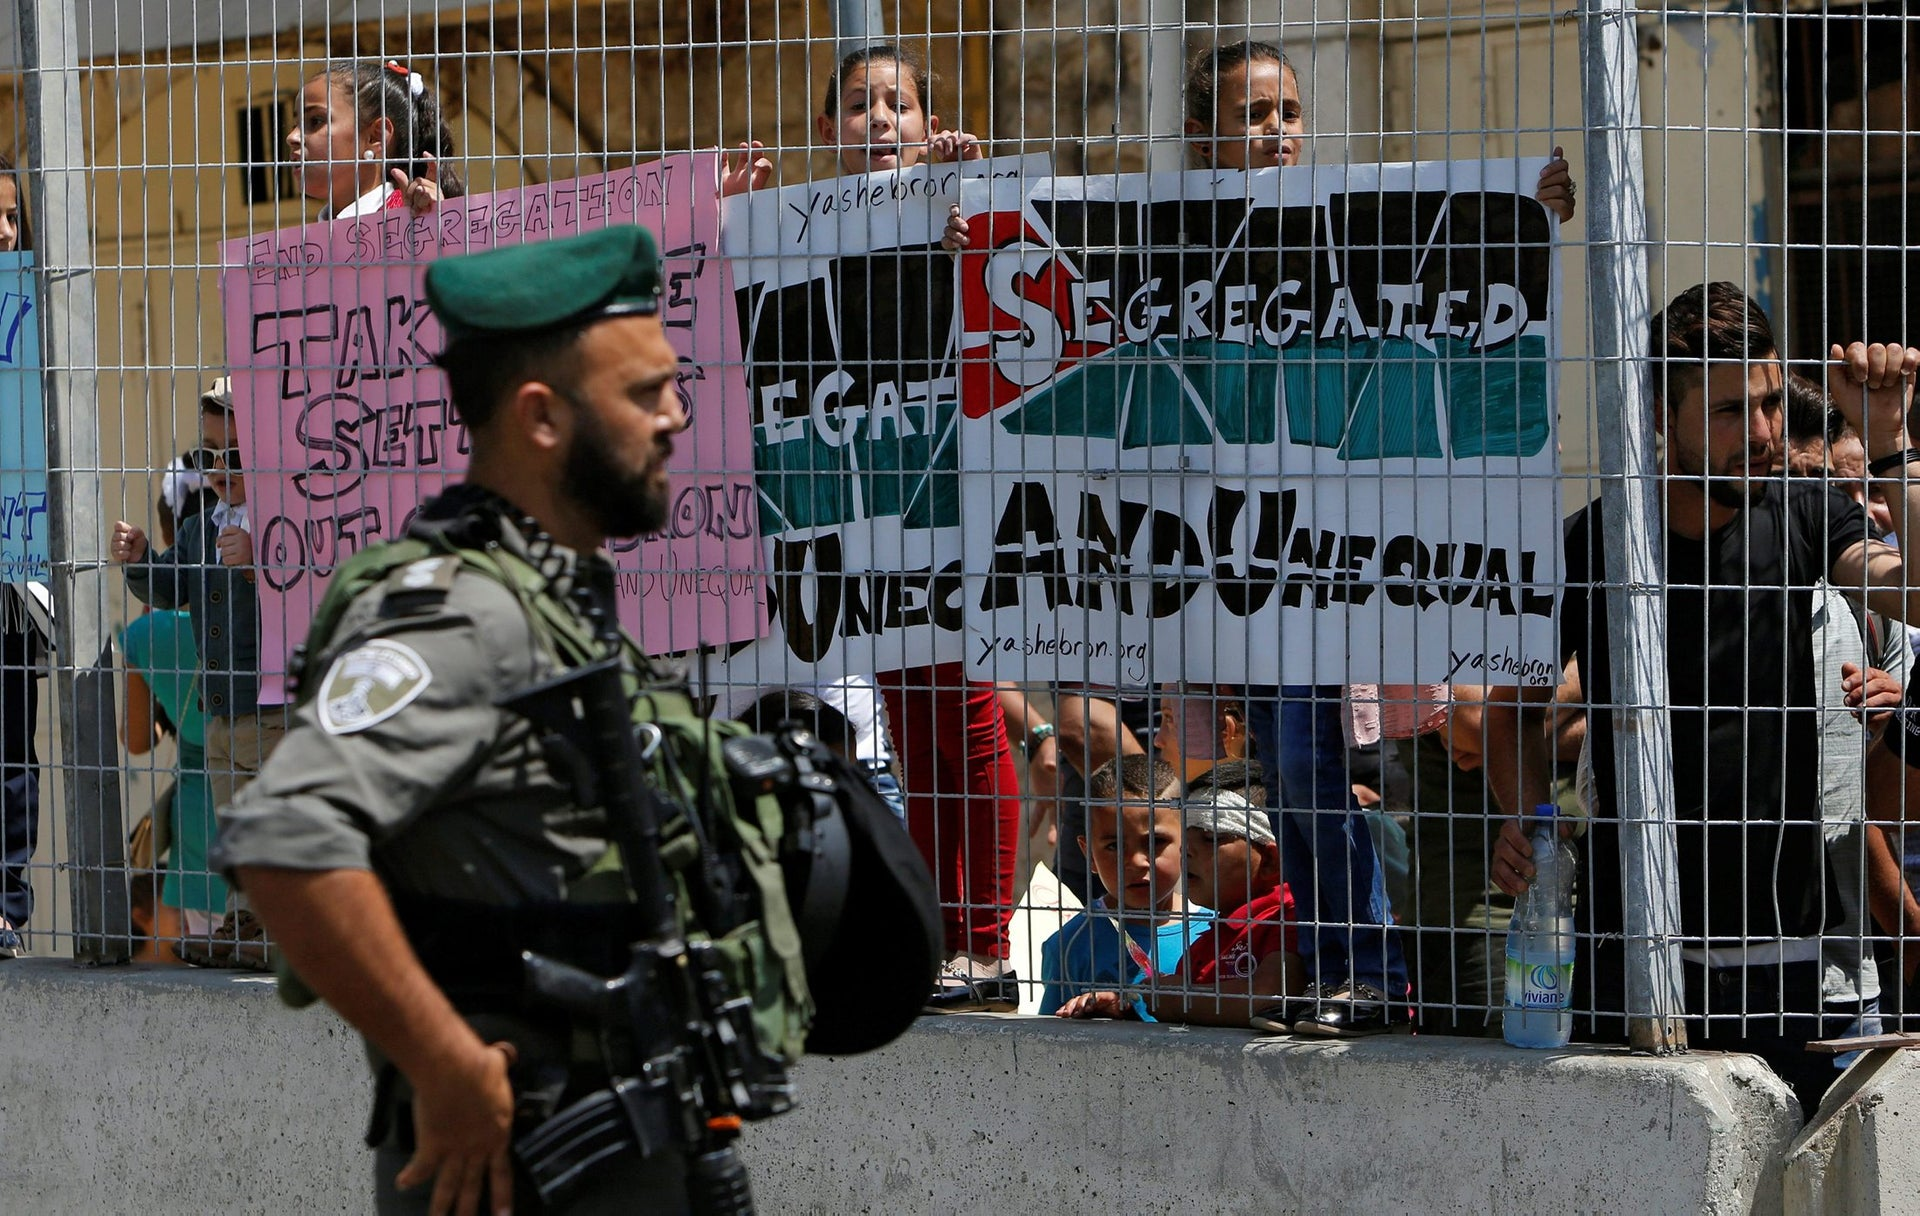 An Israeli policeman stands guard during a protest by Palestinians in the Old City of Hebron, West Bank, September 3, 2017.